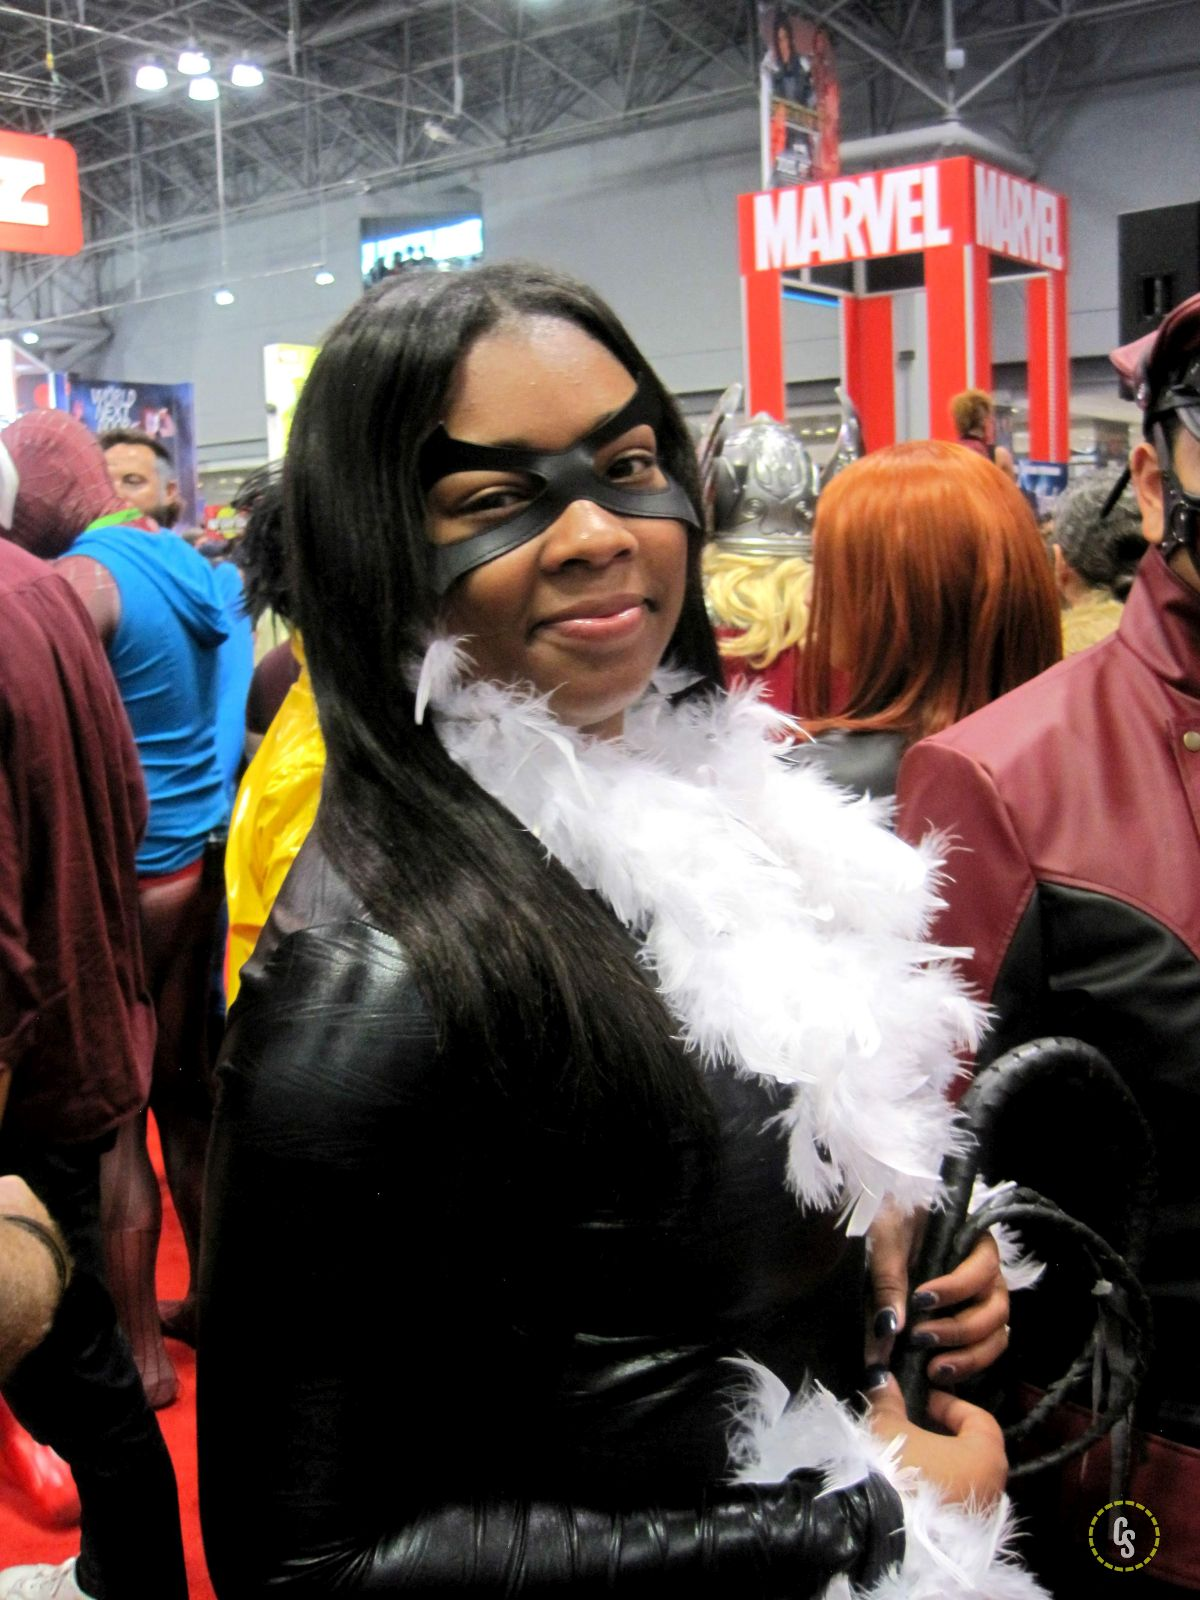 nycc183_033